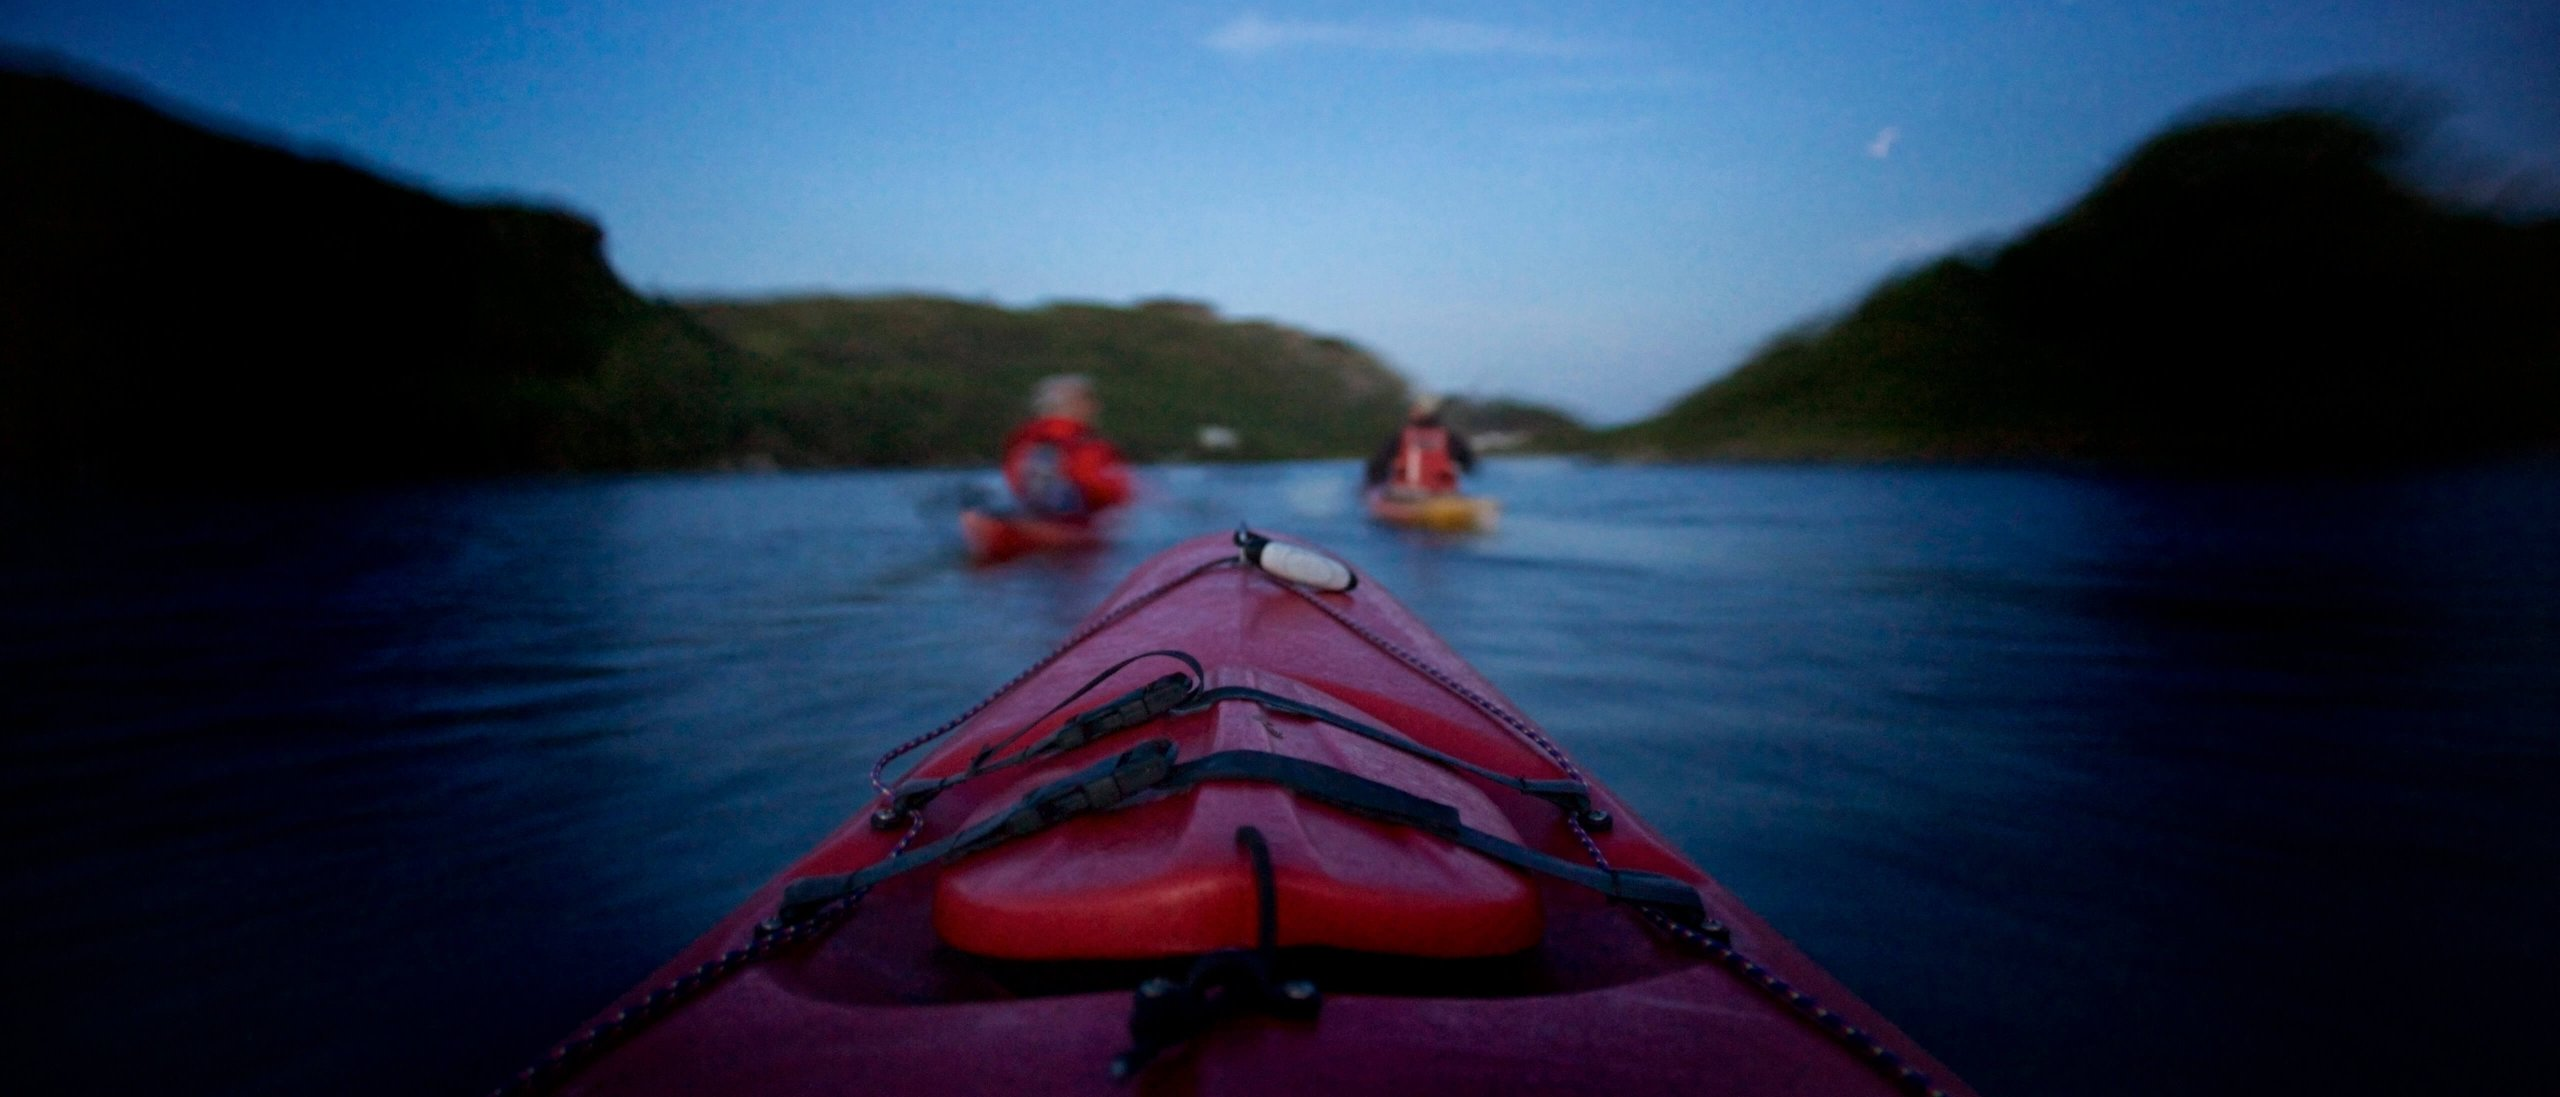 Point of view perspective shot of sea kayaking in Ireland with blur effect